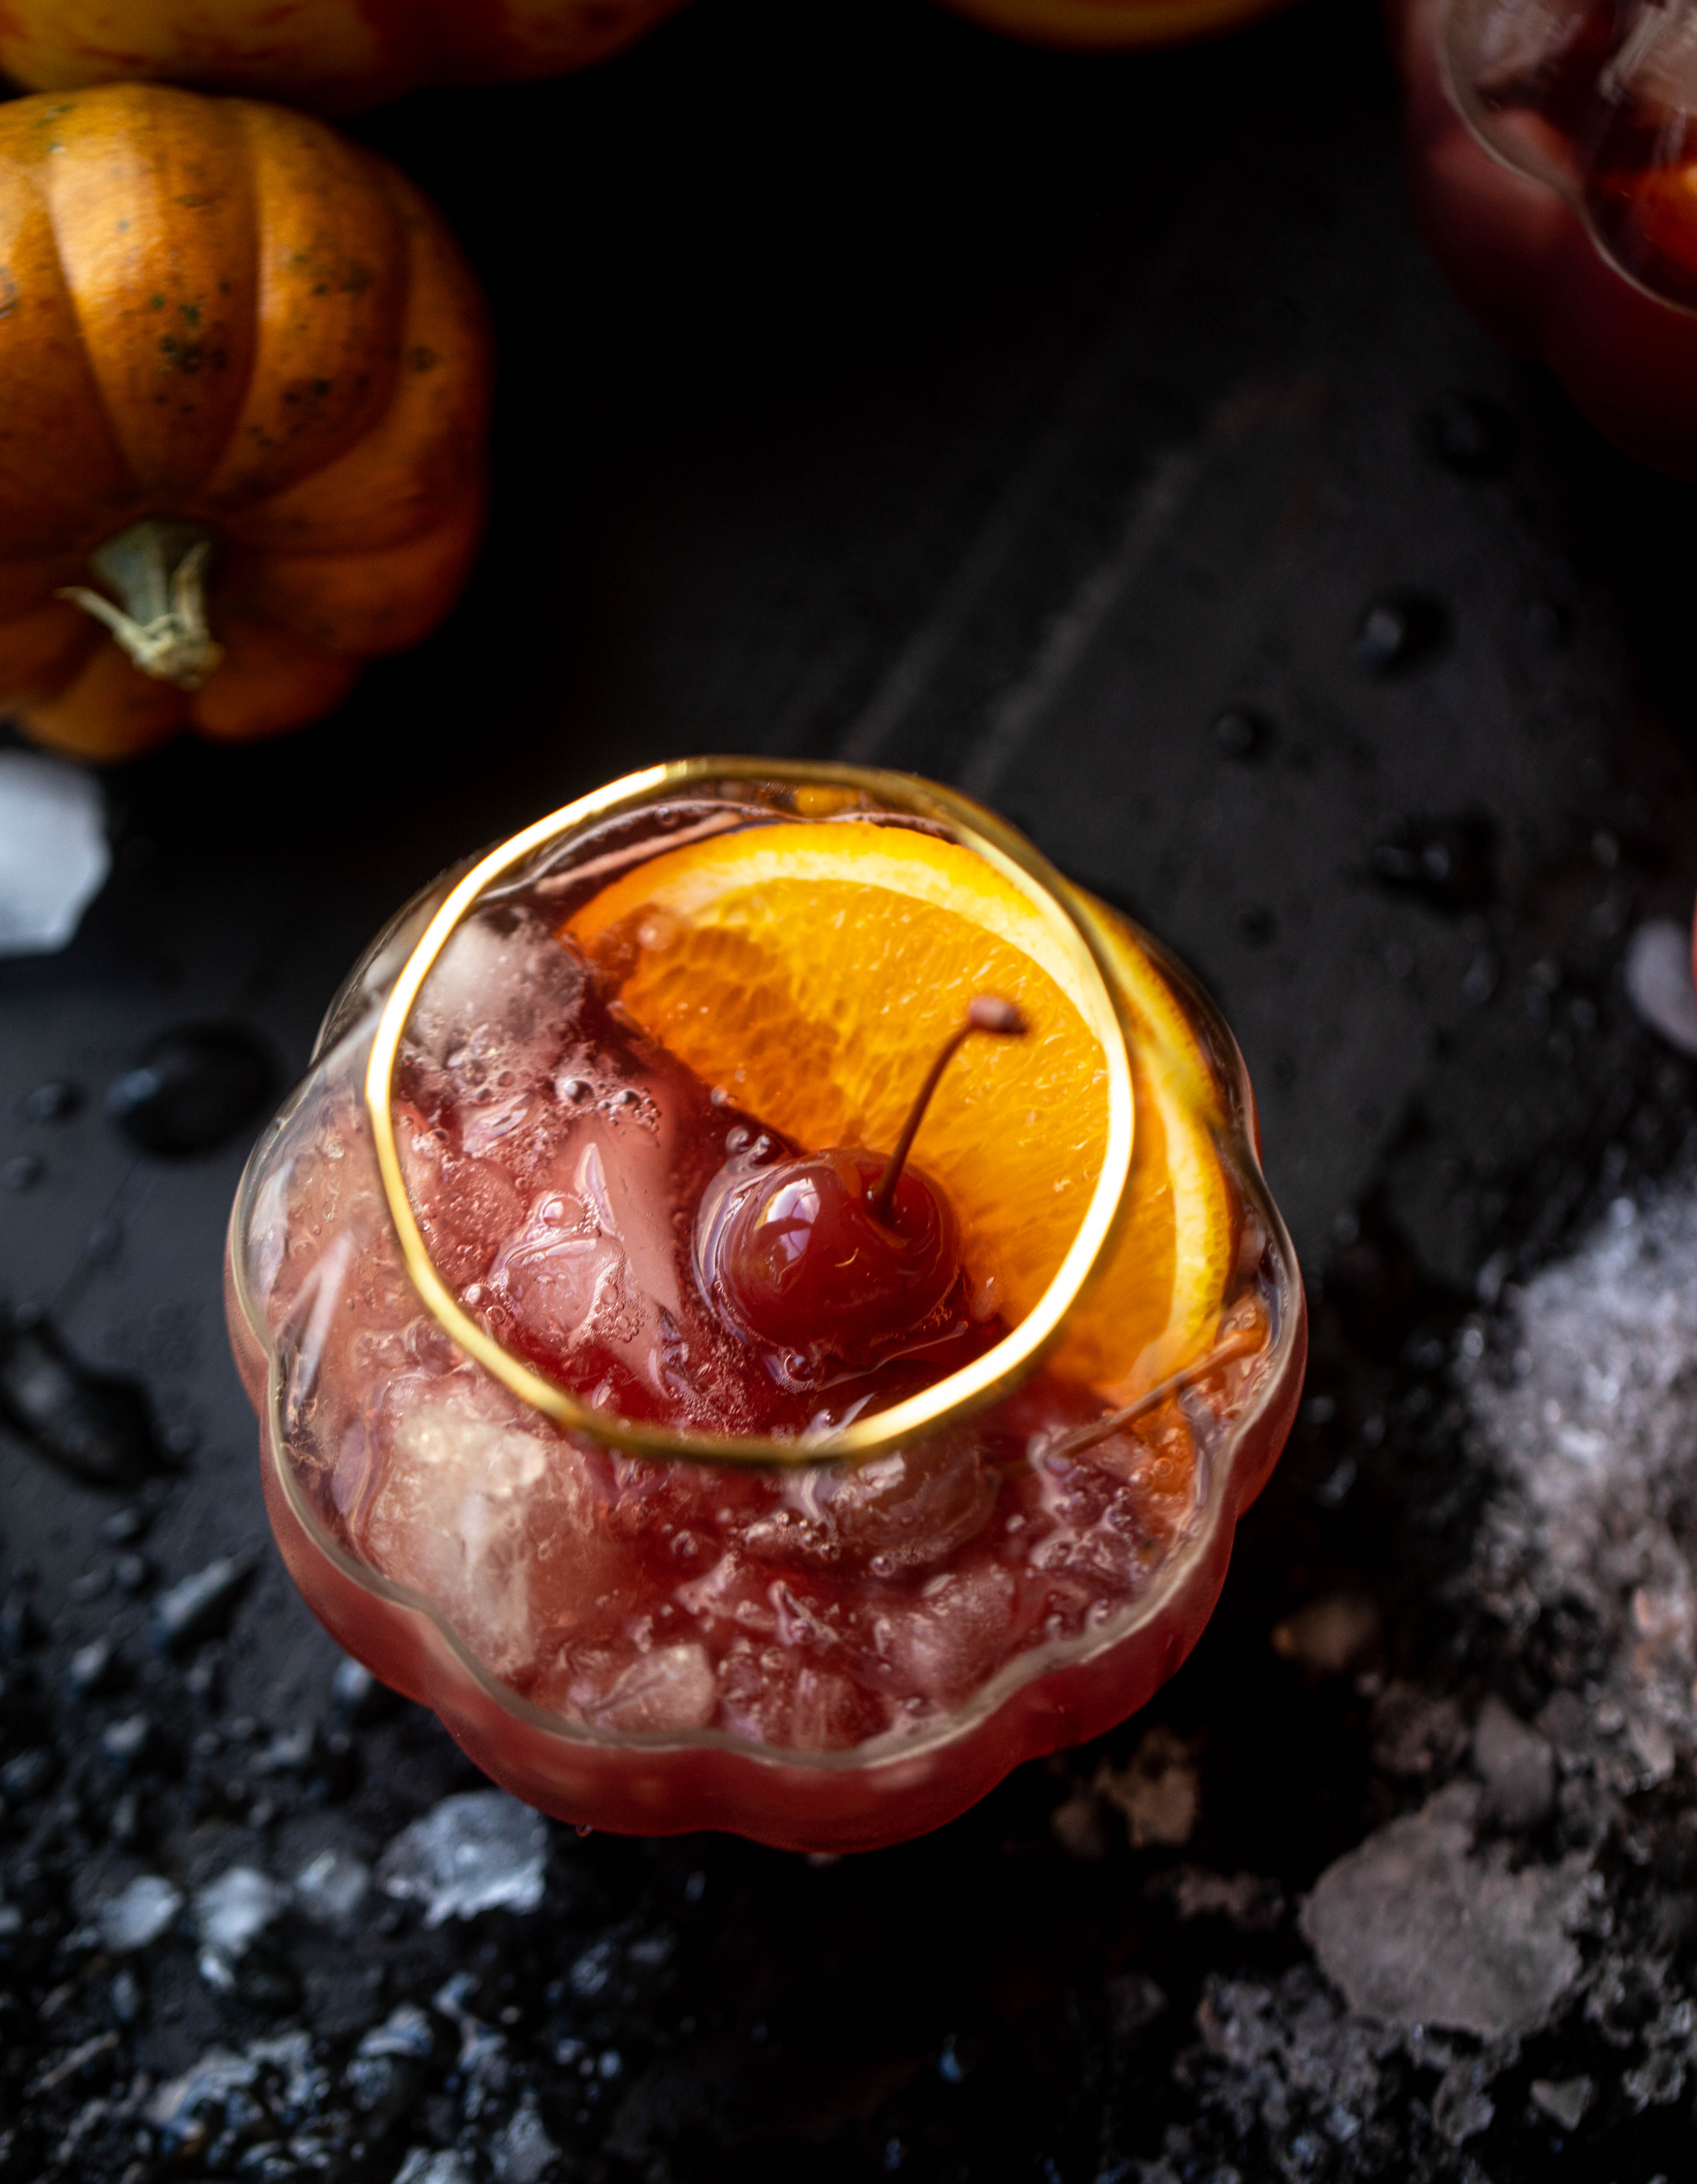 Link to recipe for Hocus Pocus Halloween Punch